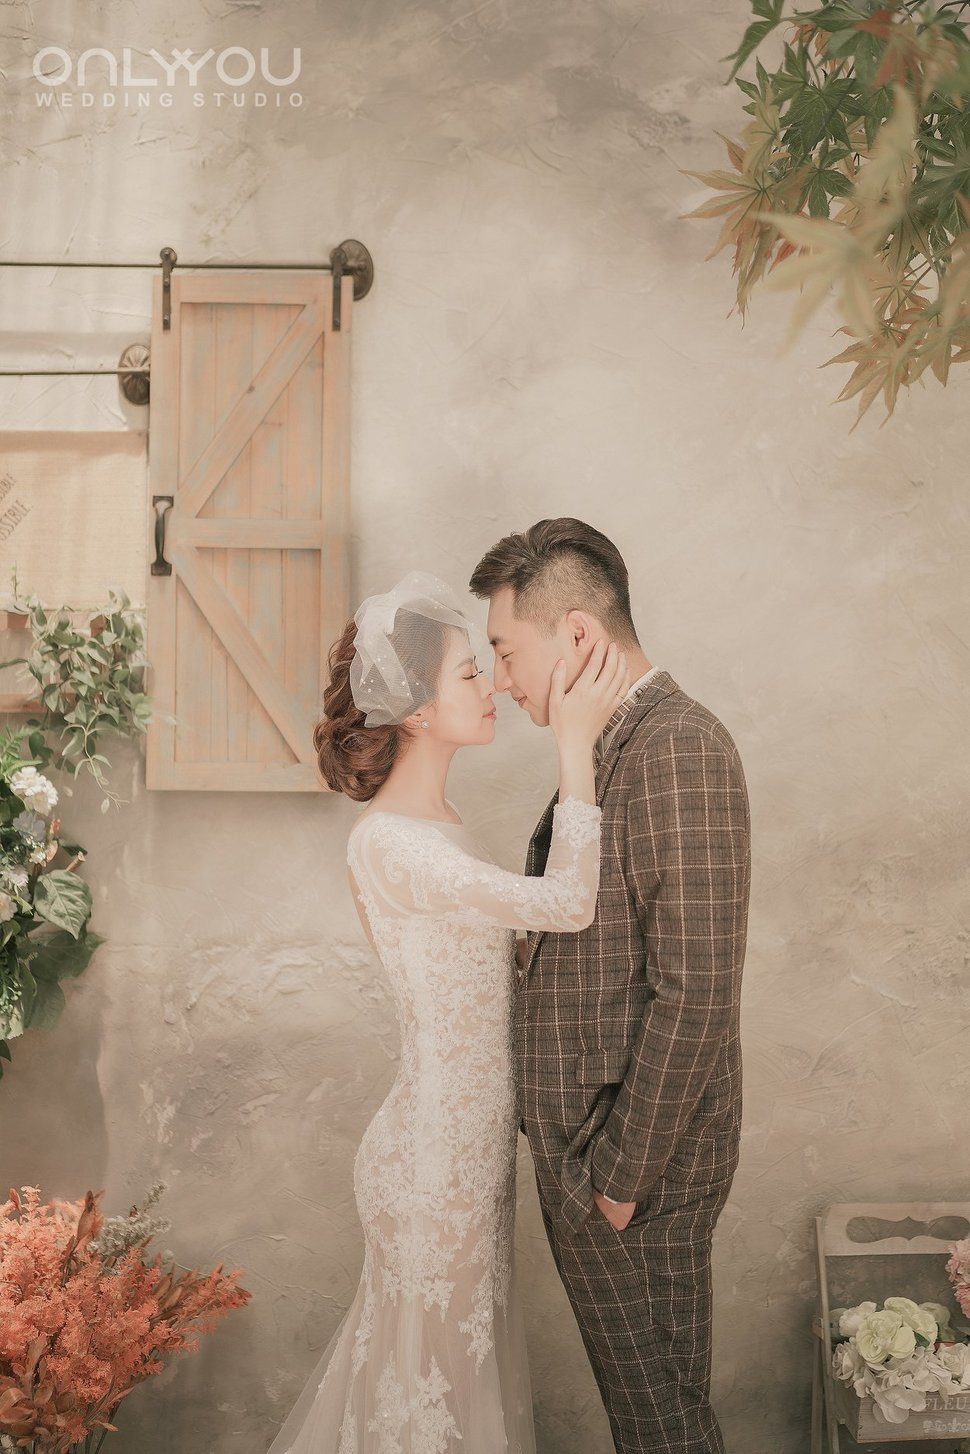 66452383_2258081464247487_1372911460379787264_o - ONLY YOU 唯你婚紗攝影《結婚吧》